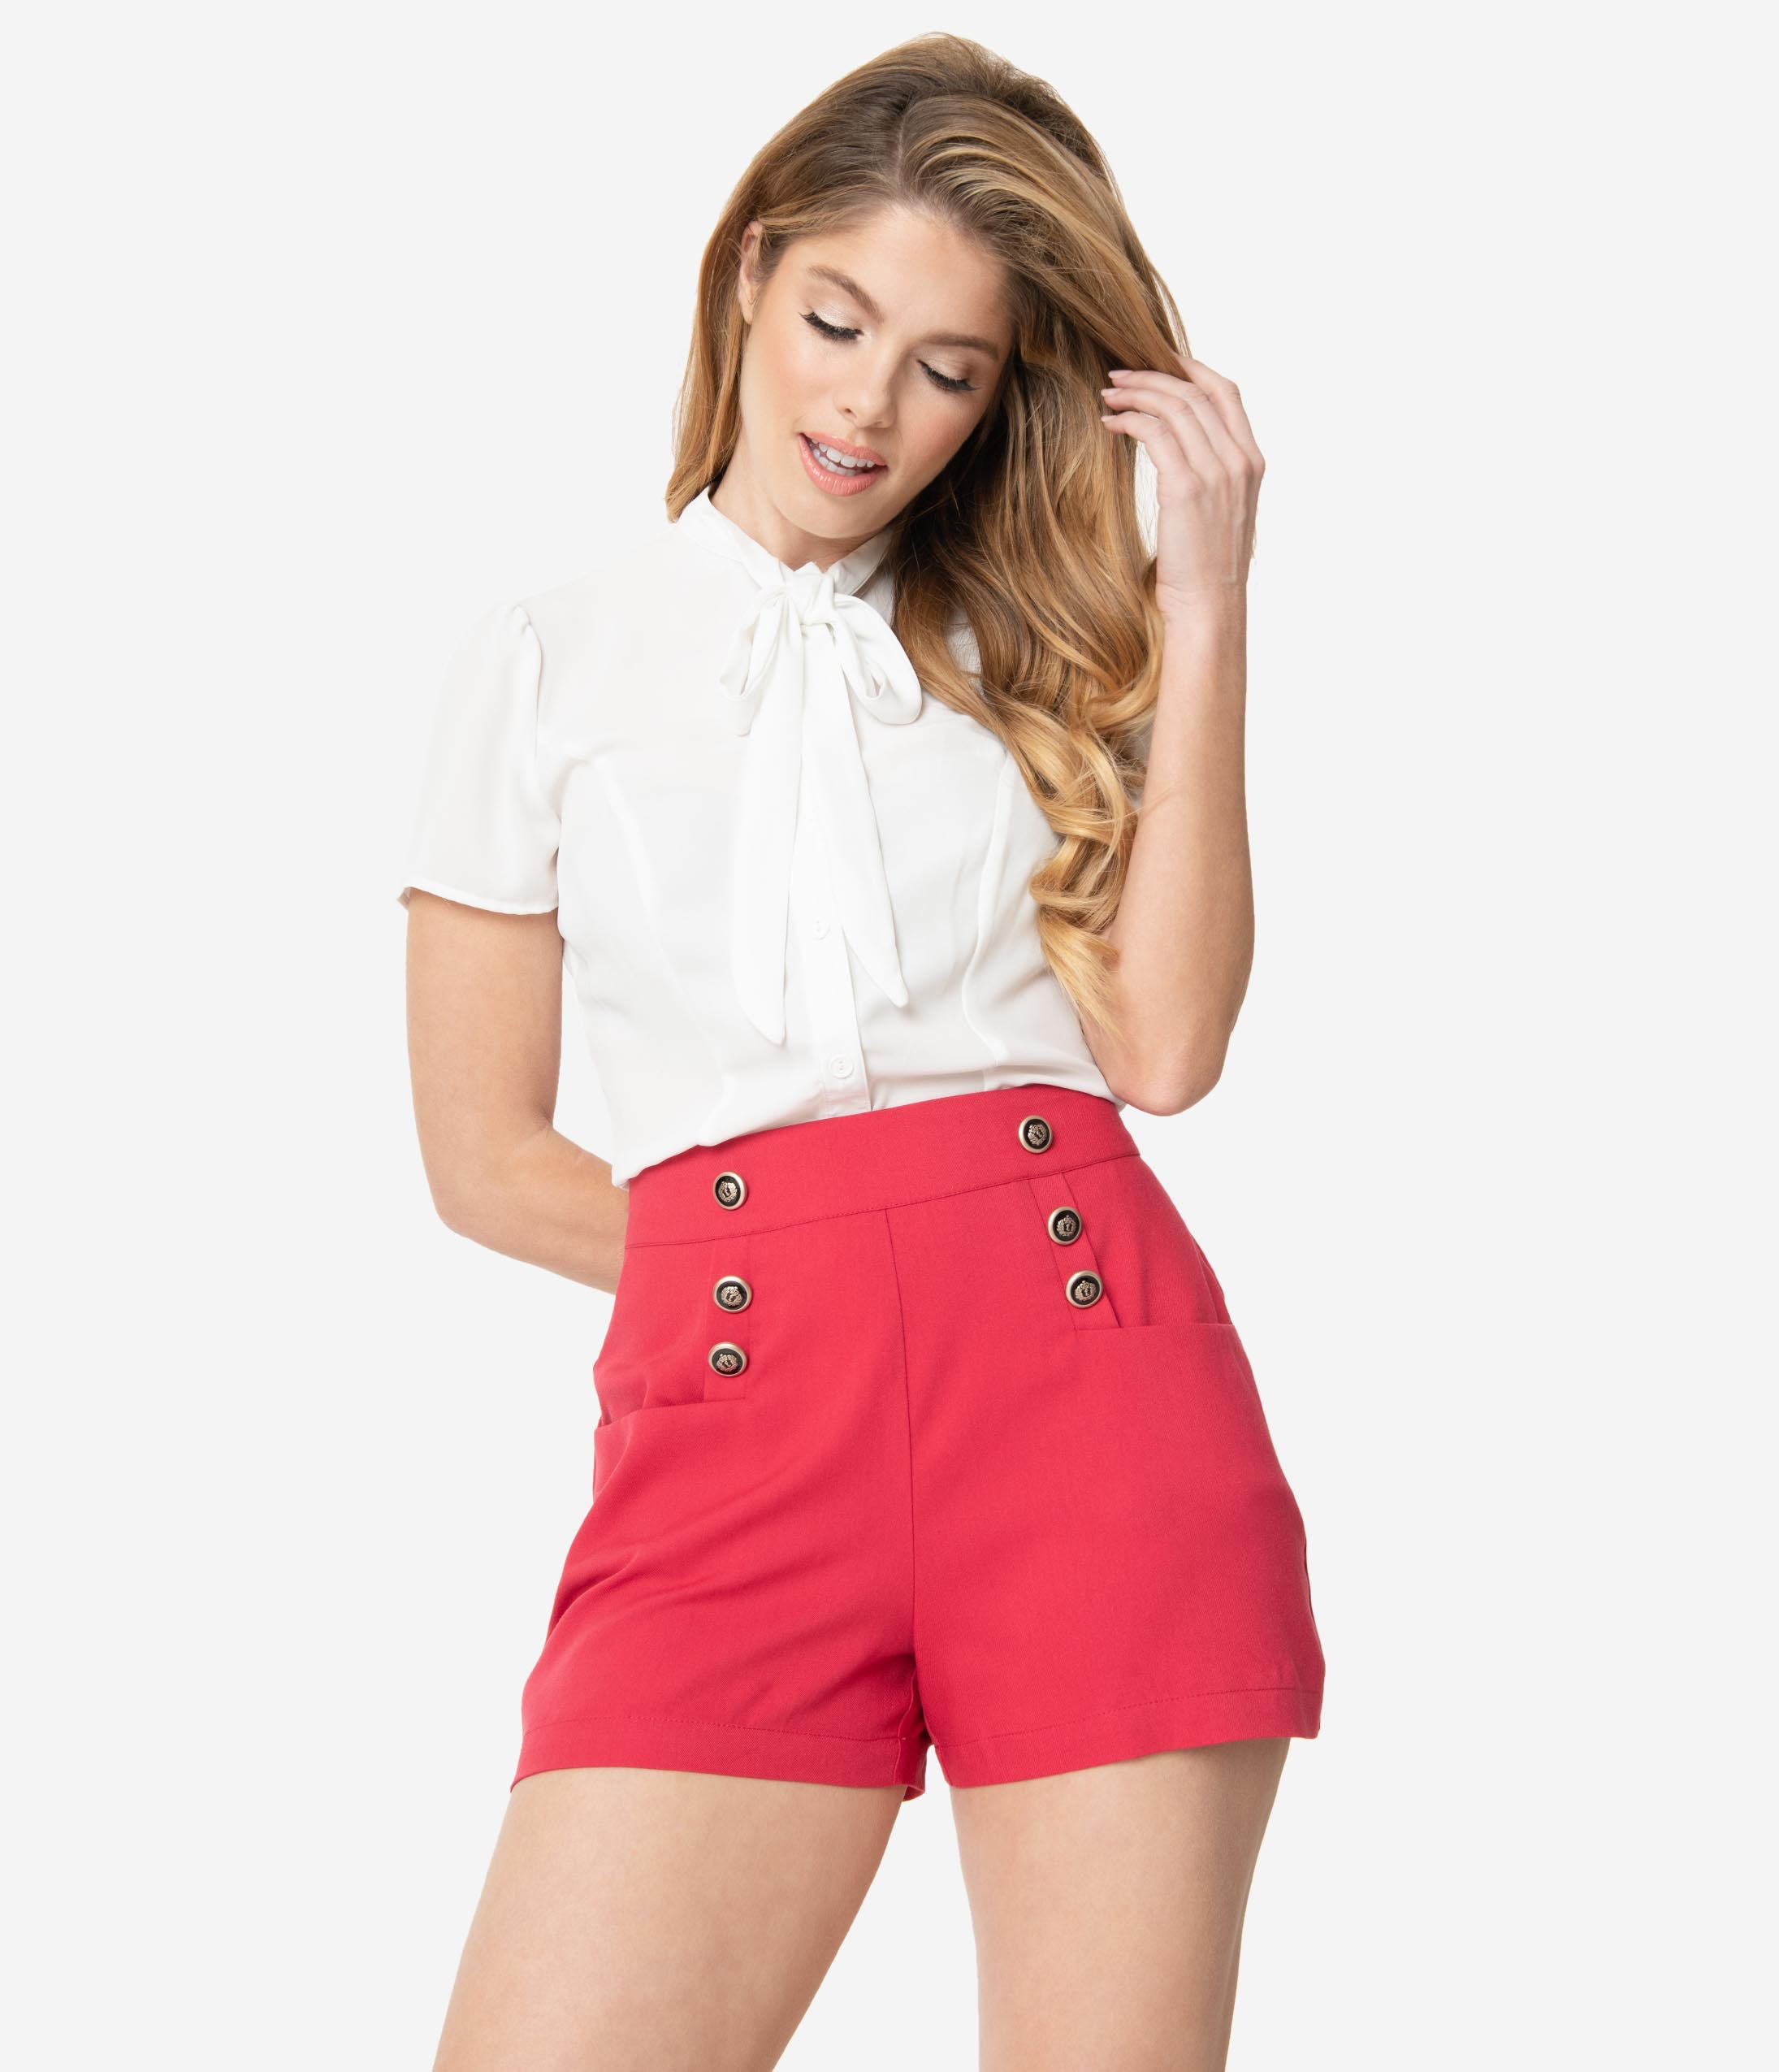 1950s Pinup Shorts, Retro Shorts Unique Vintage 1940S Style Red High Waist Sailor Debbie Shorts $48.00 AT vintagedancer.com